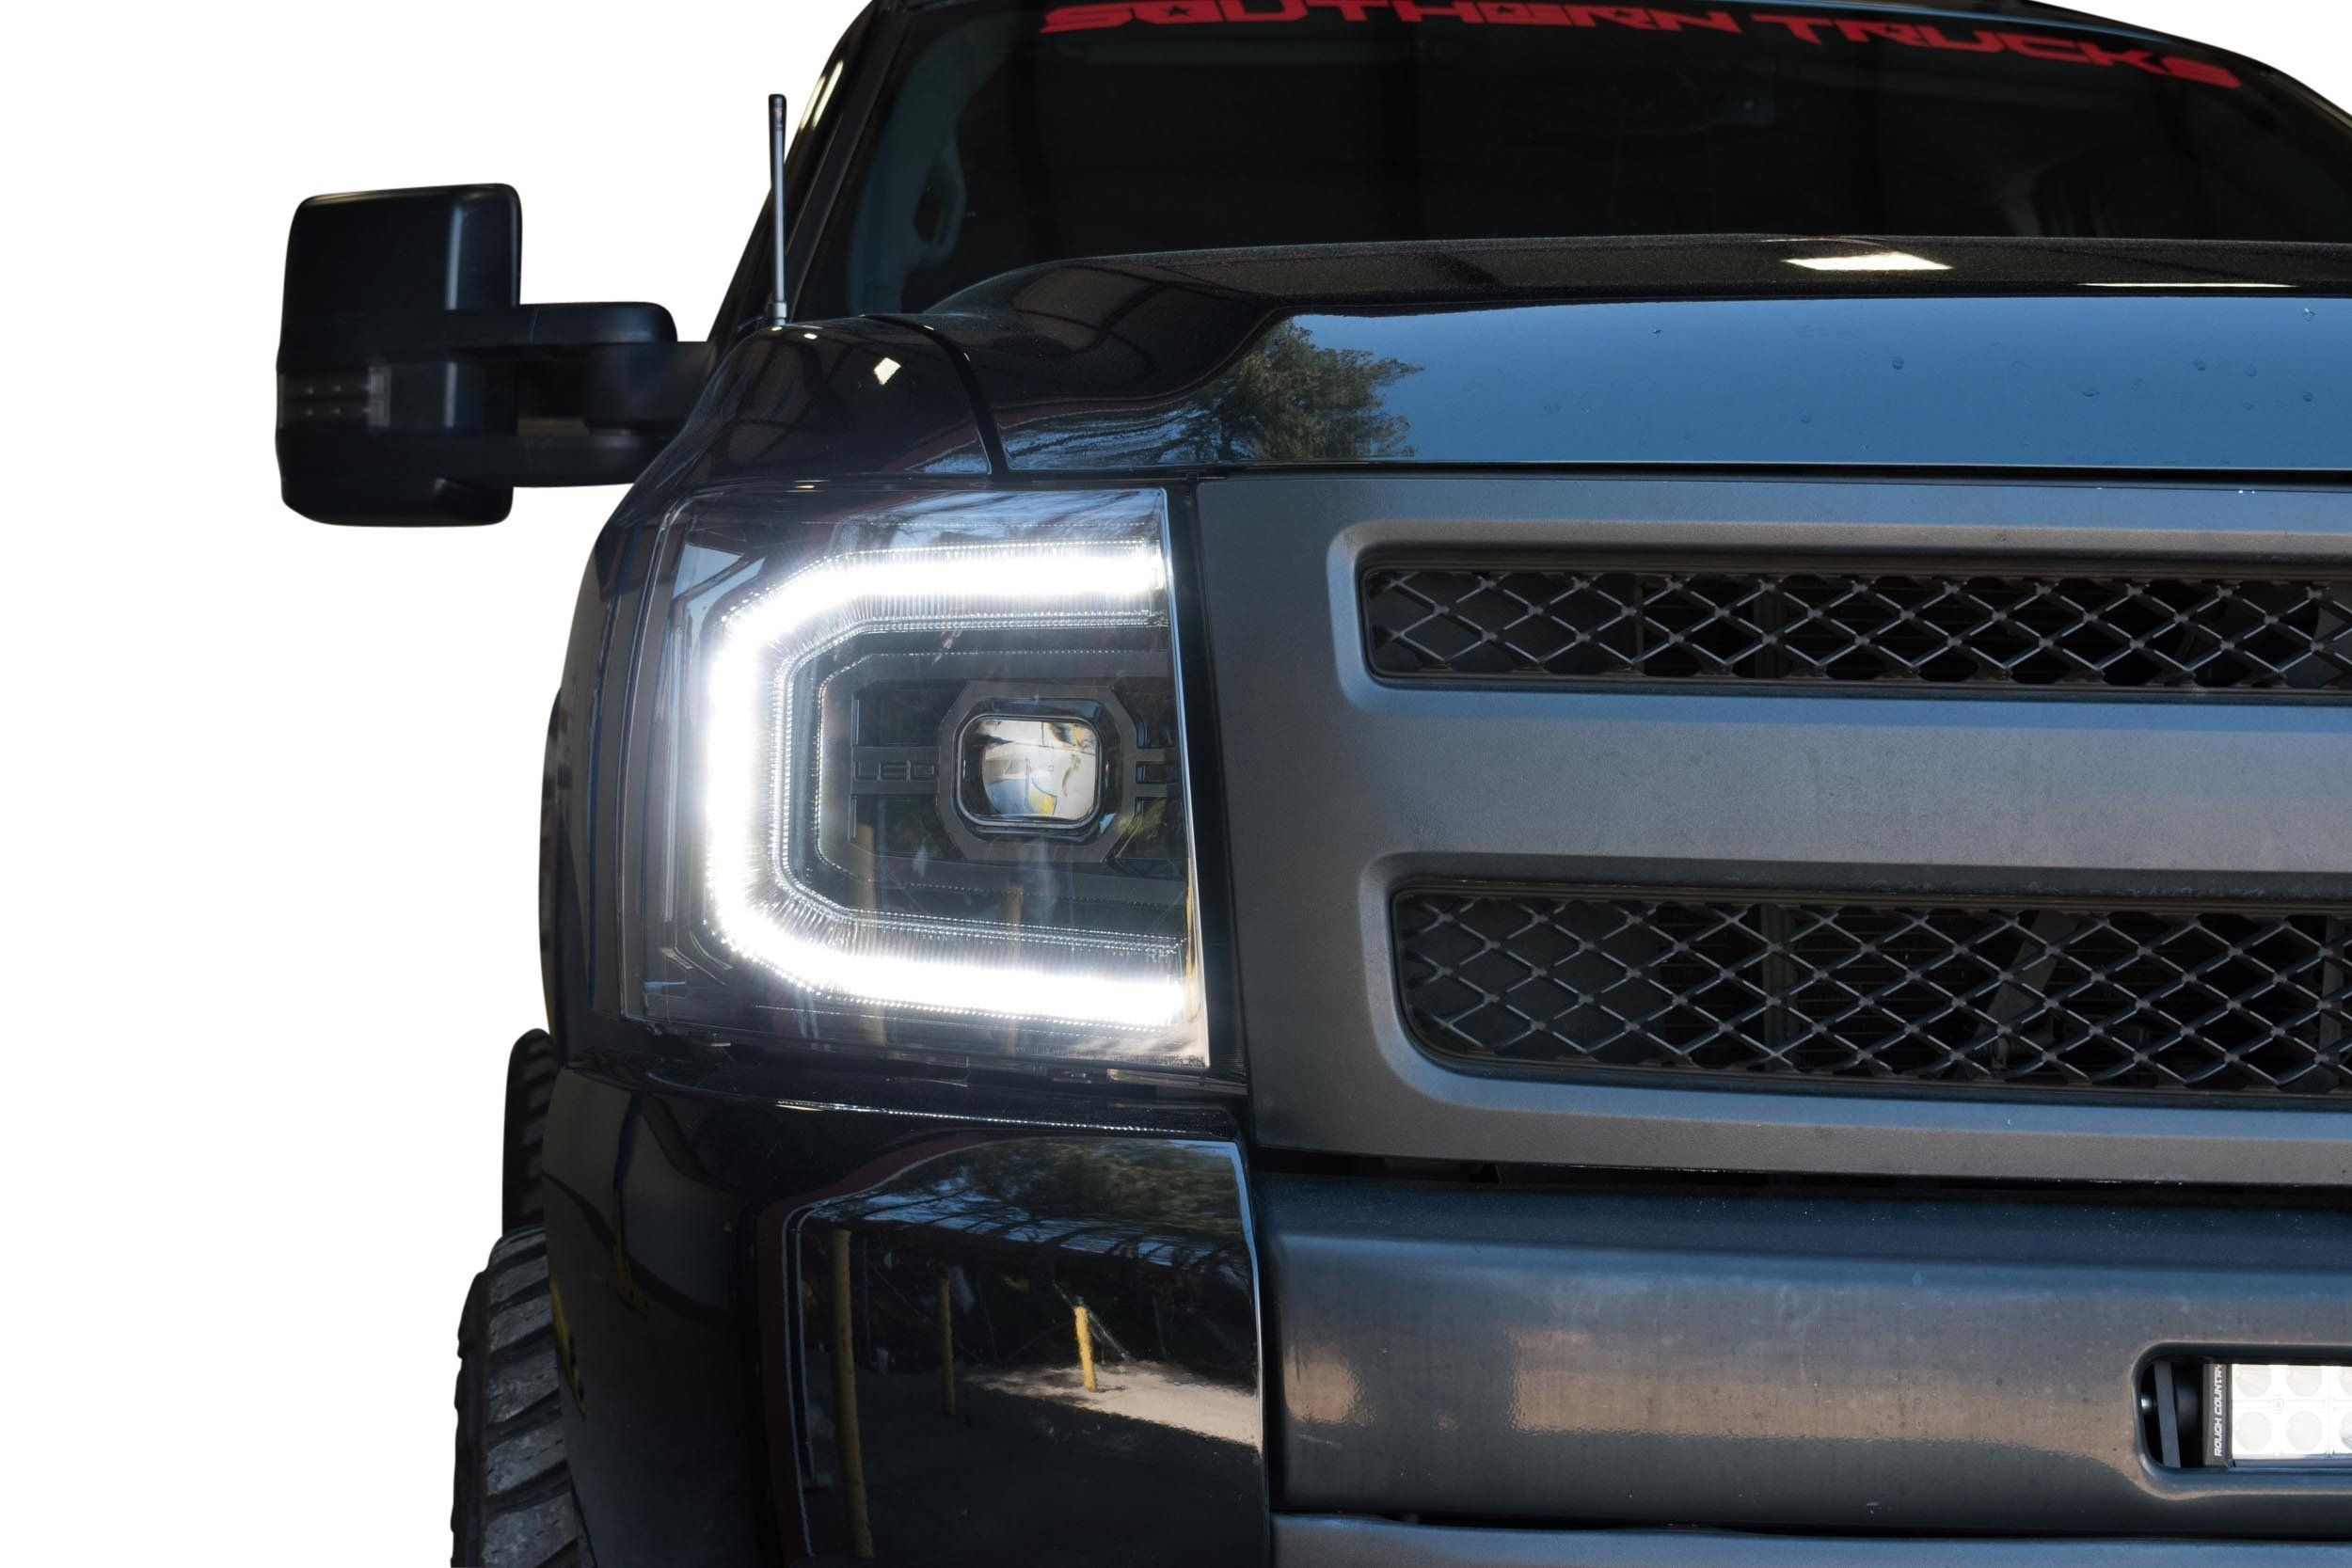 2007 2013 Chevrolet Silverado Xb Led Projector Headlights Complete Led Housings From The Retrofit Sou Led Headlights Chevrolet Silverado Silverado Headlights